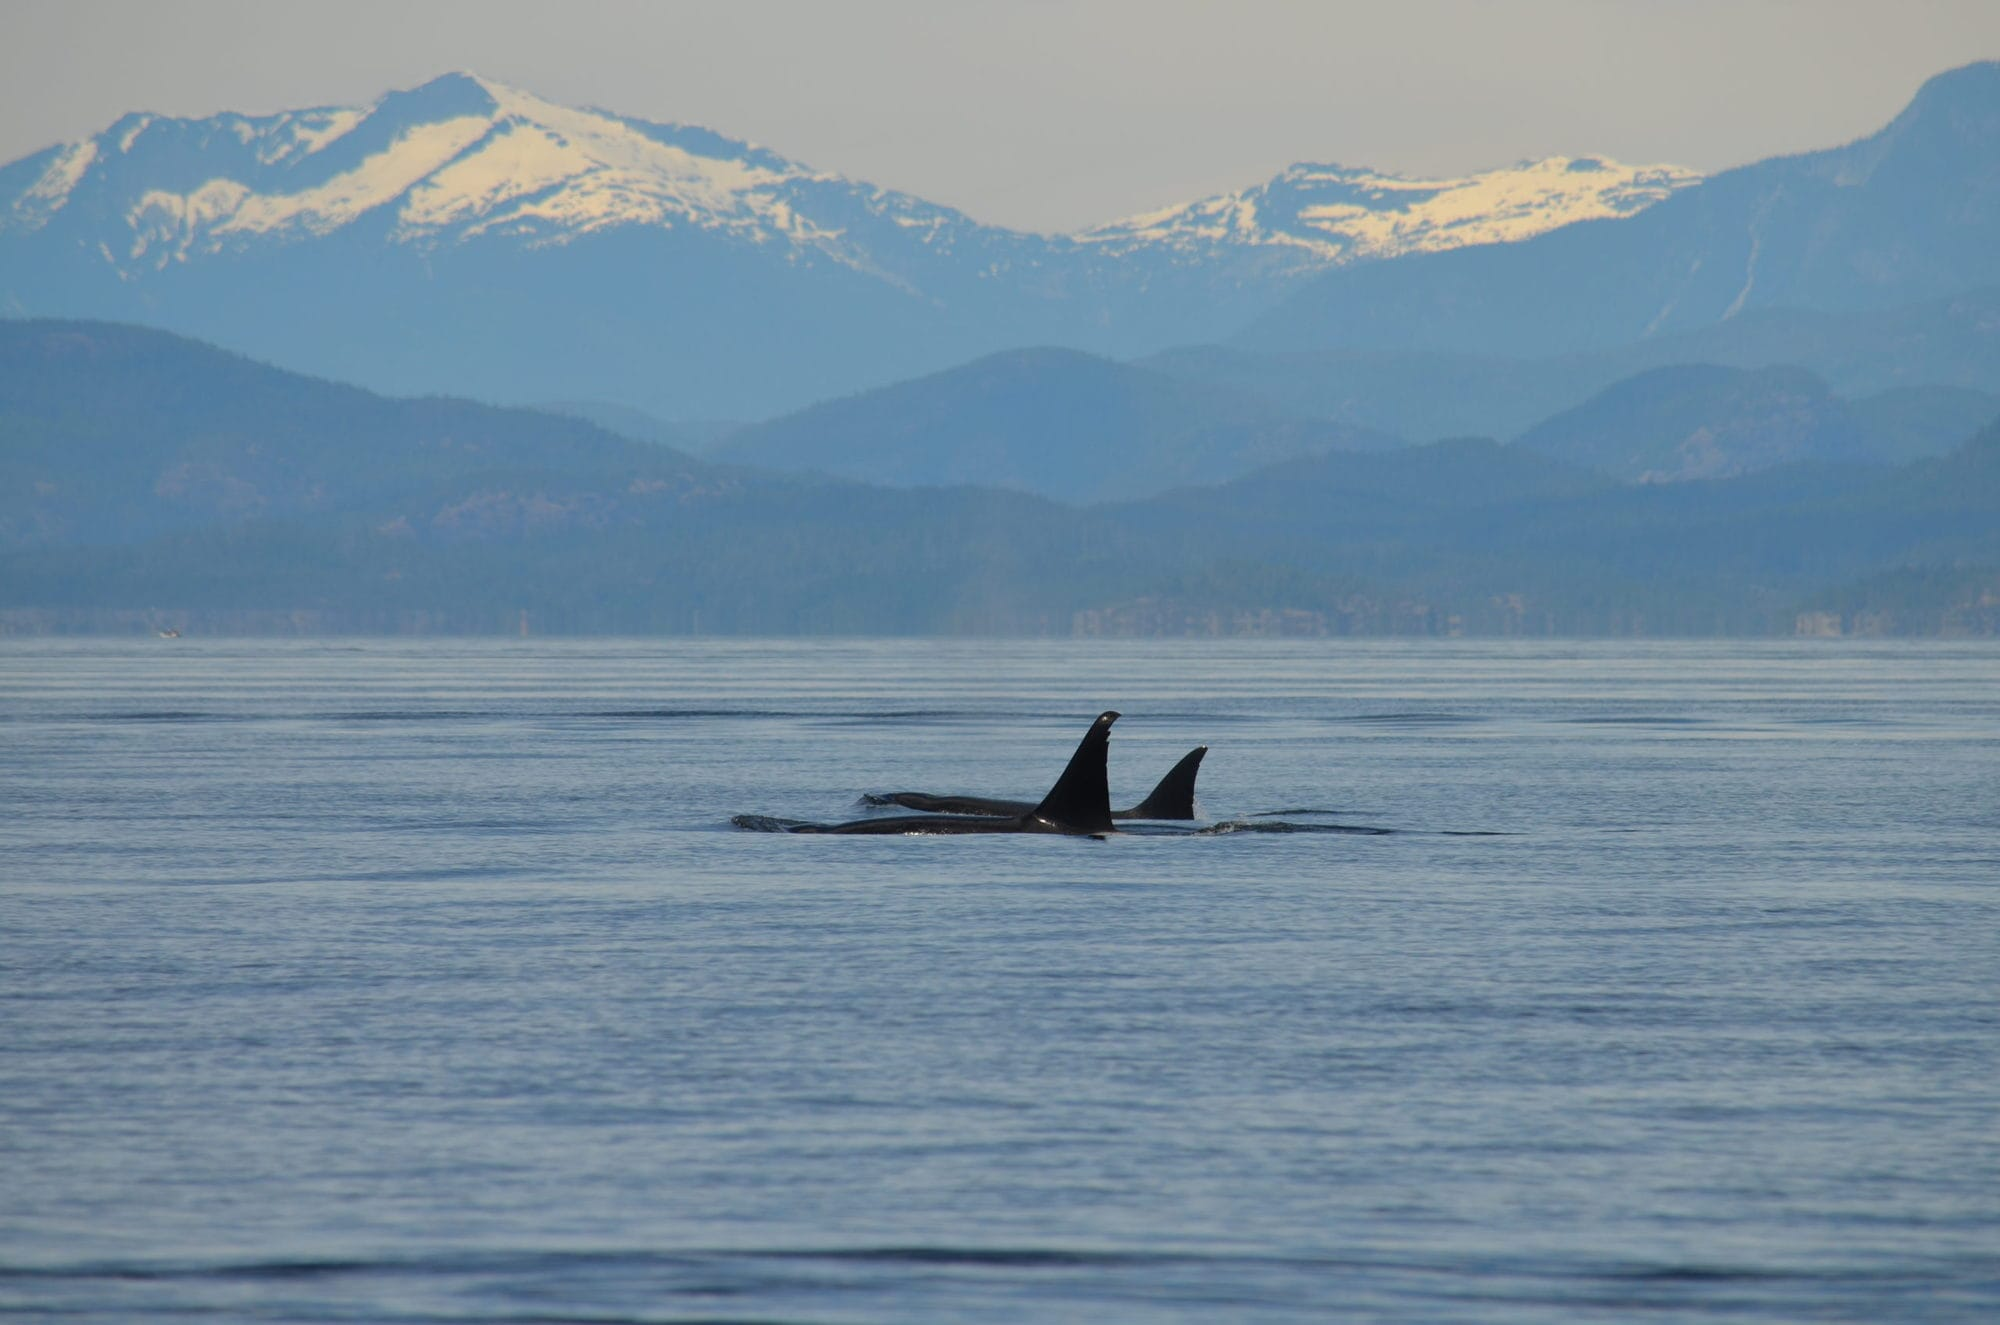 Two orcas swimming in front of snow capped mountains